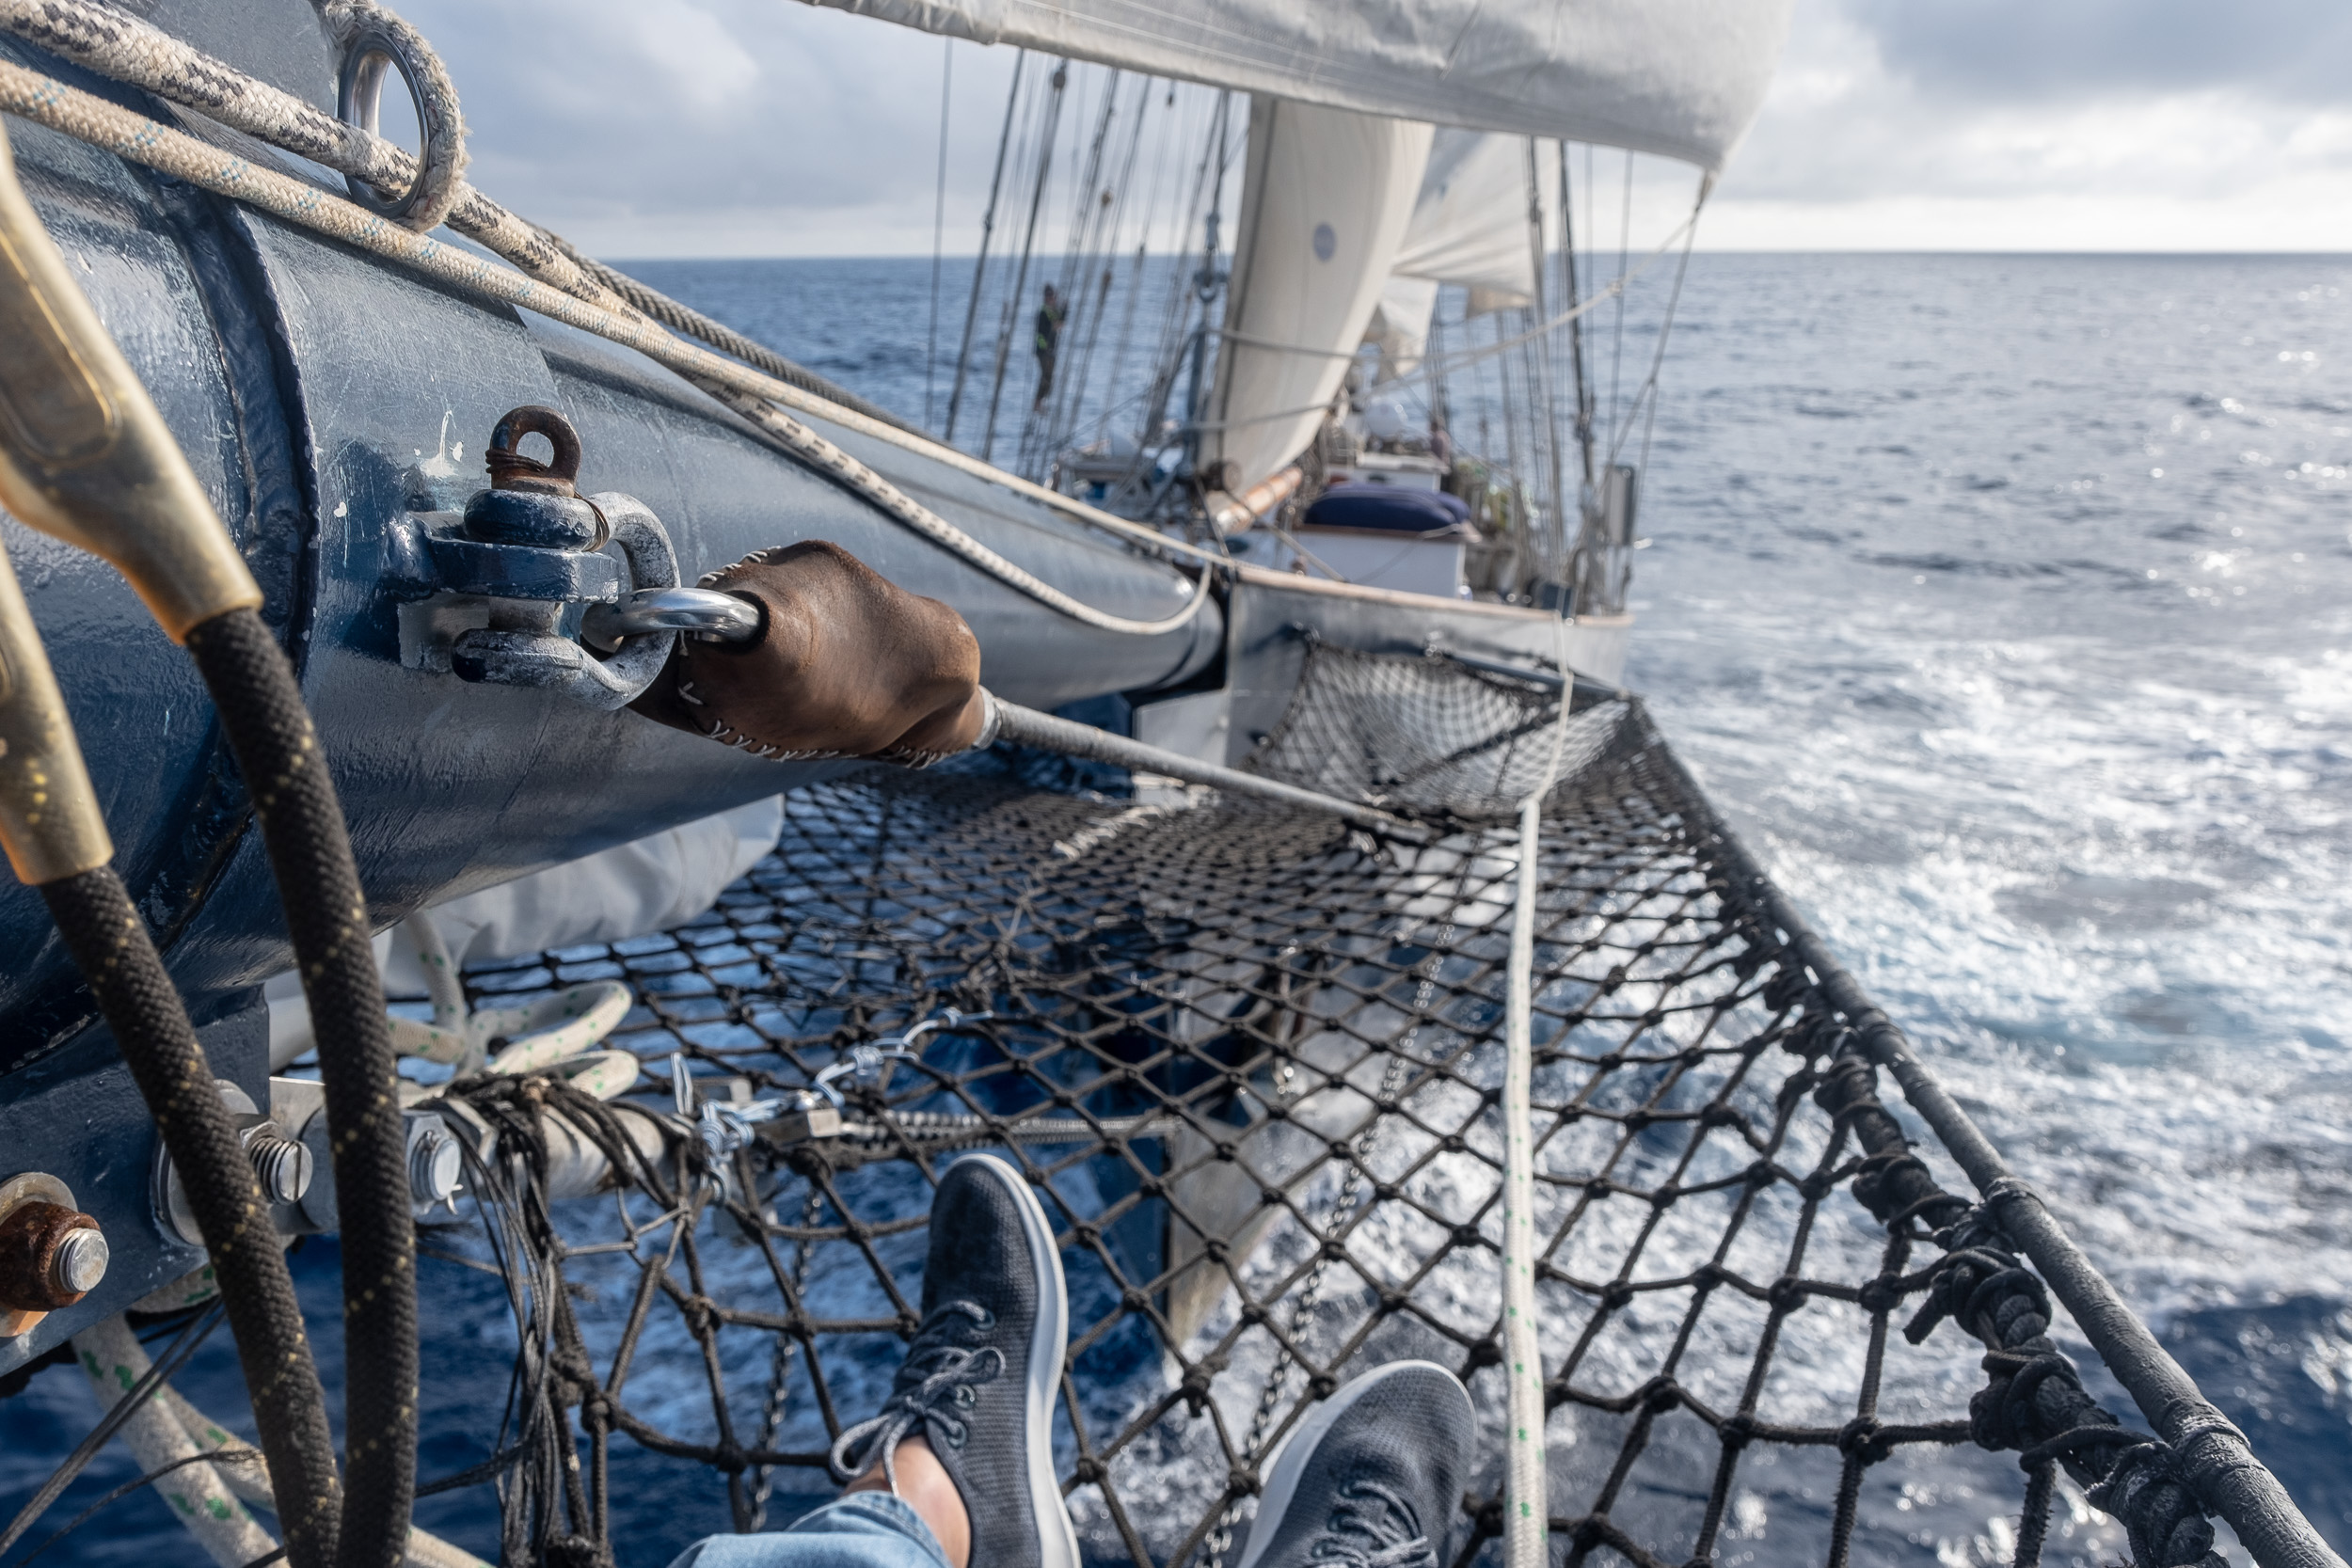 From the end of the bowsprit, no dolphins, just Allbirds!